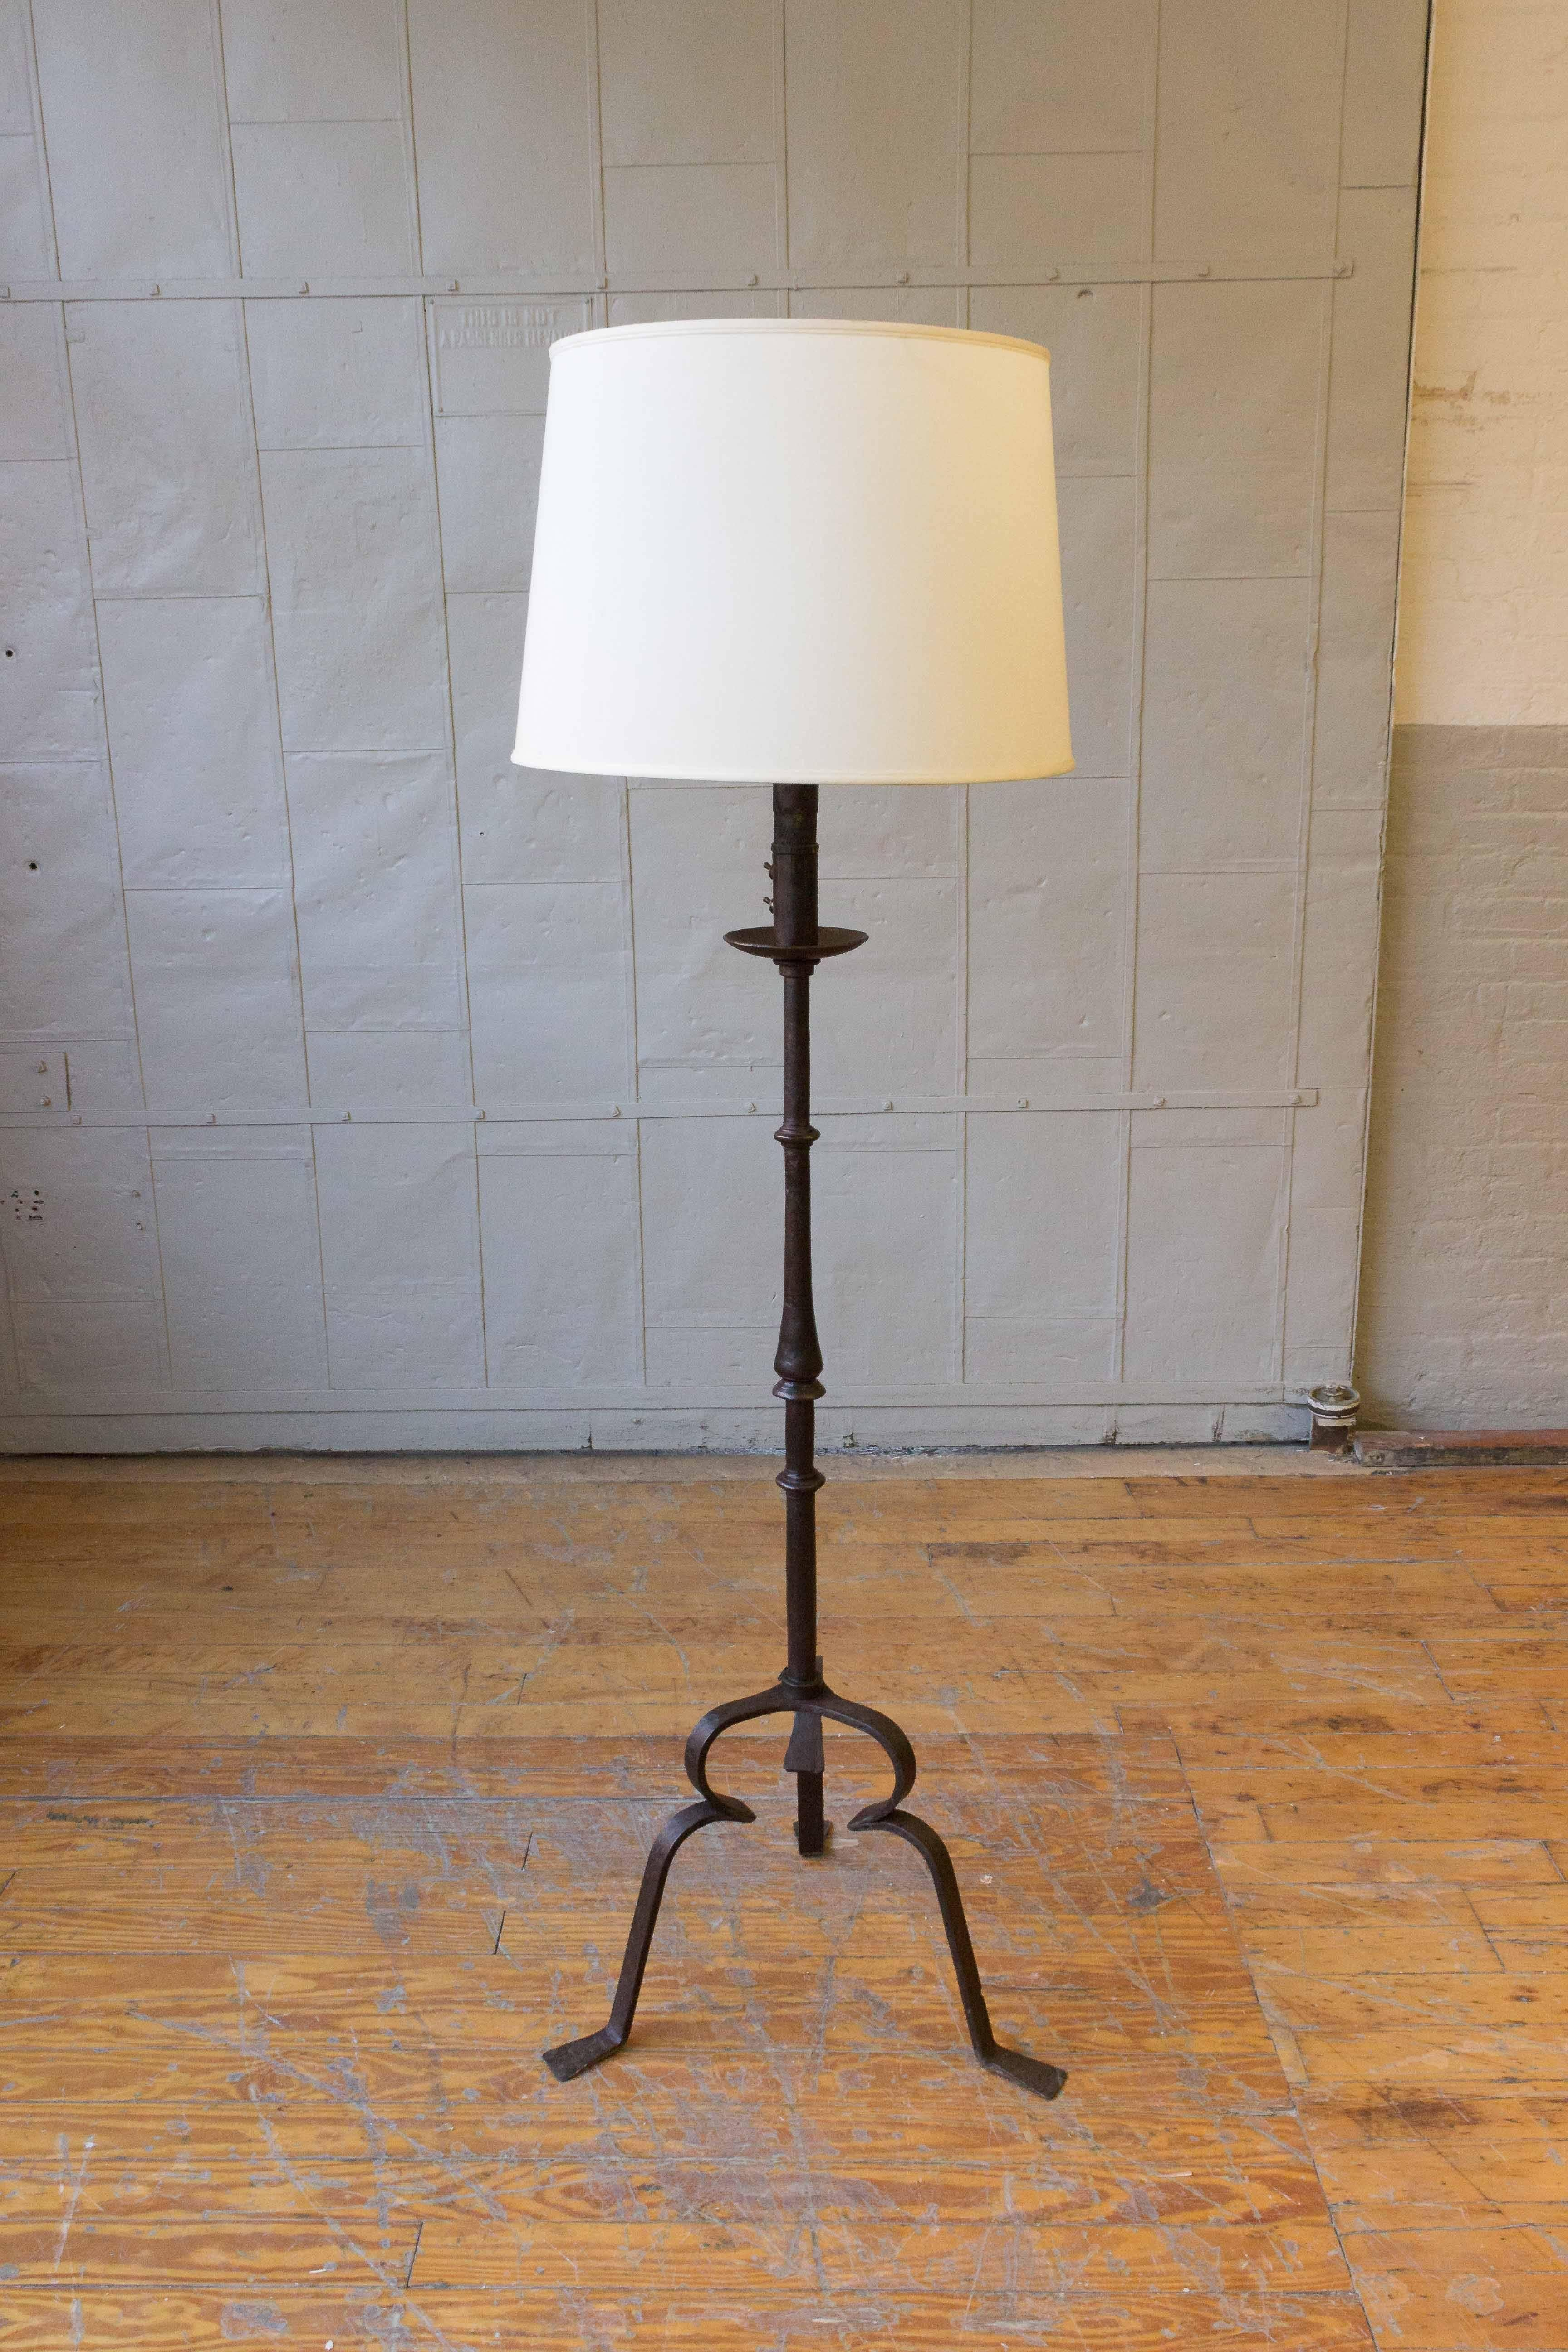 A Substantial And Heavy Wrought Iron Floor Lamp Having An Elegant Tripod  Base. The Iron